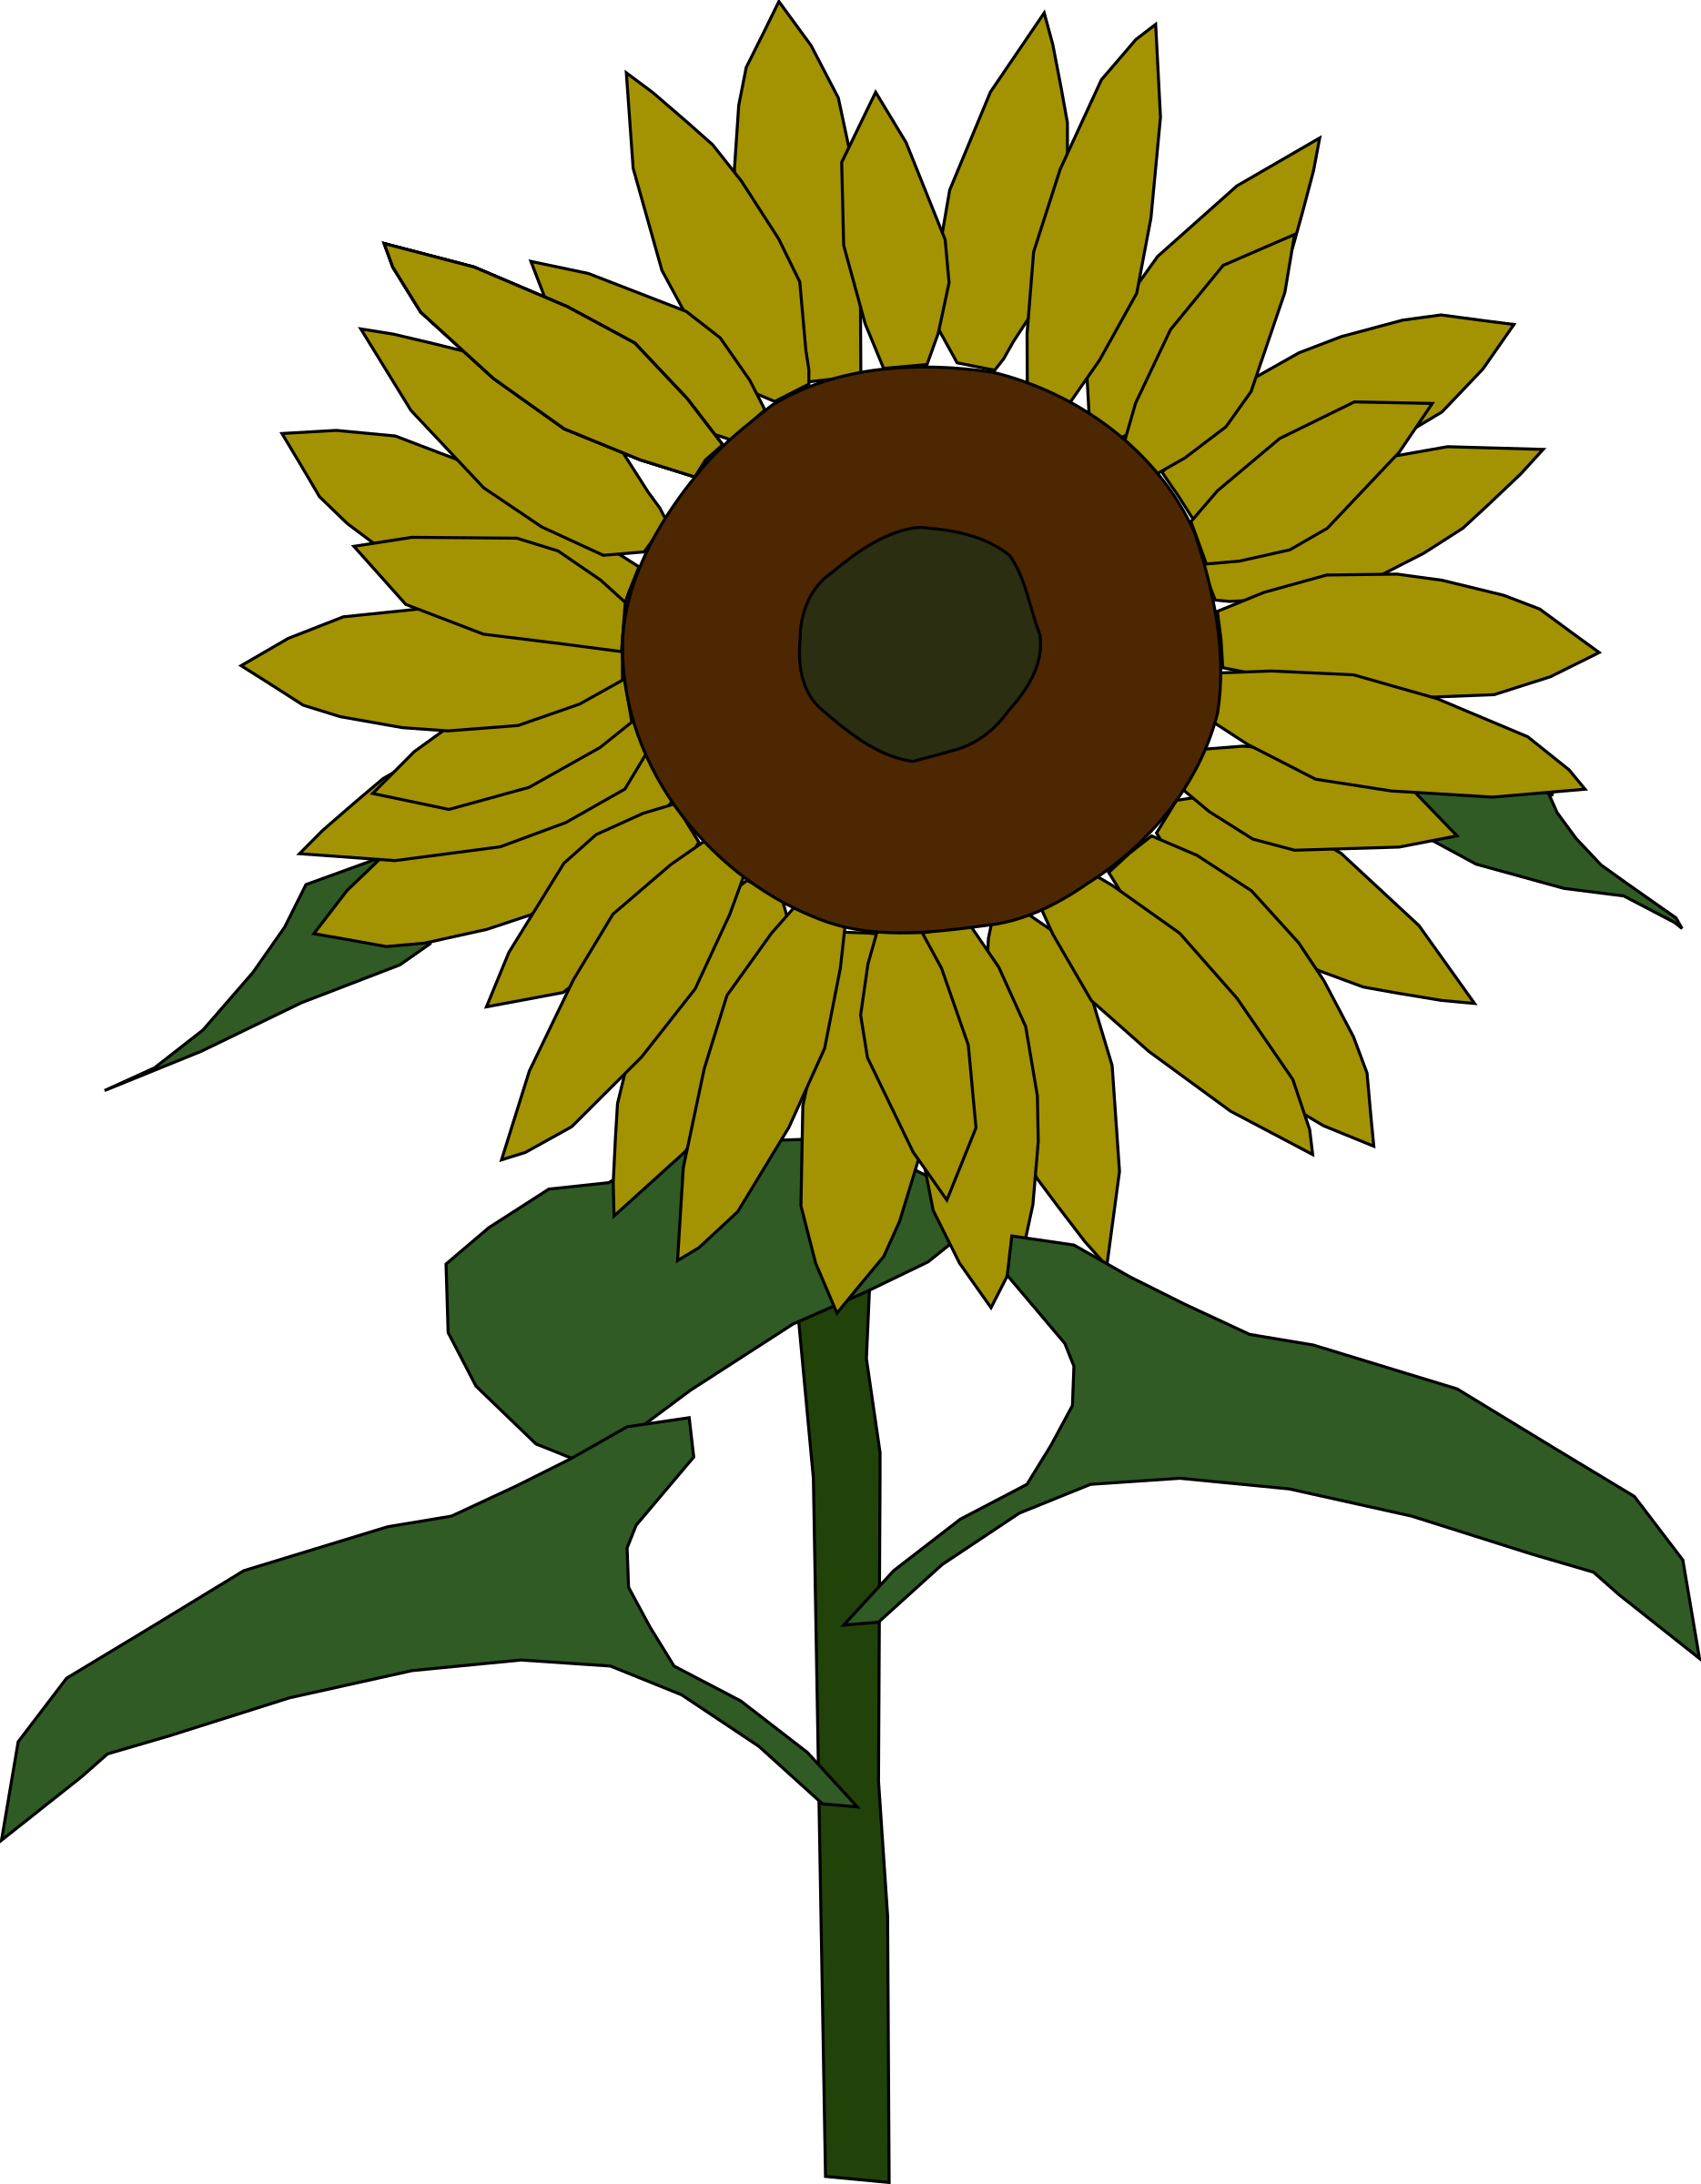 Flower seeds clipart graphic black and white Clipart - sunflower graphic black and white